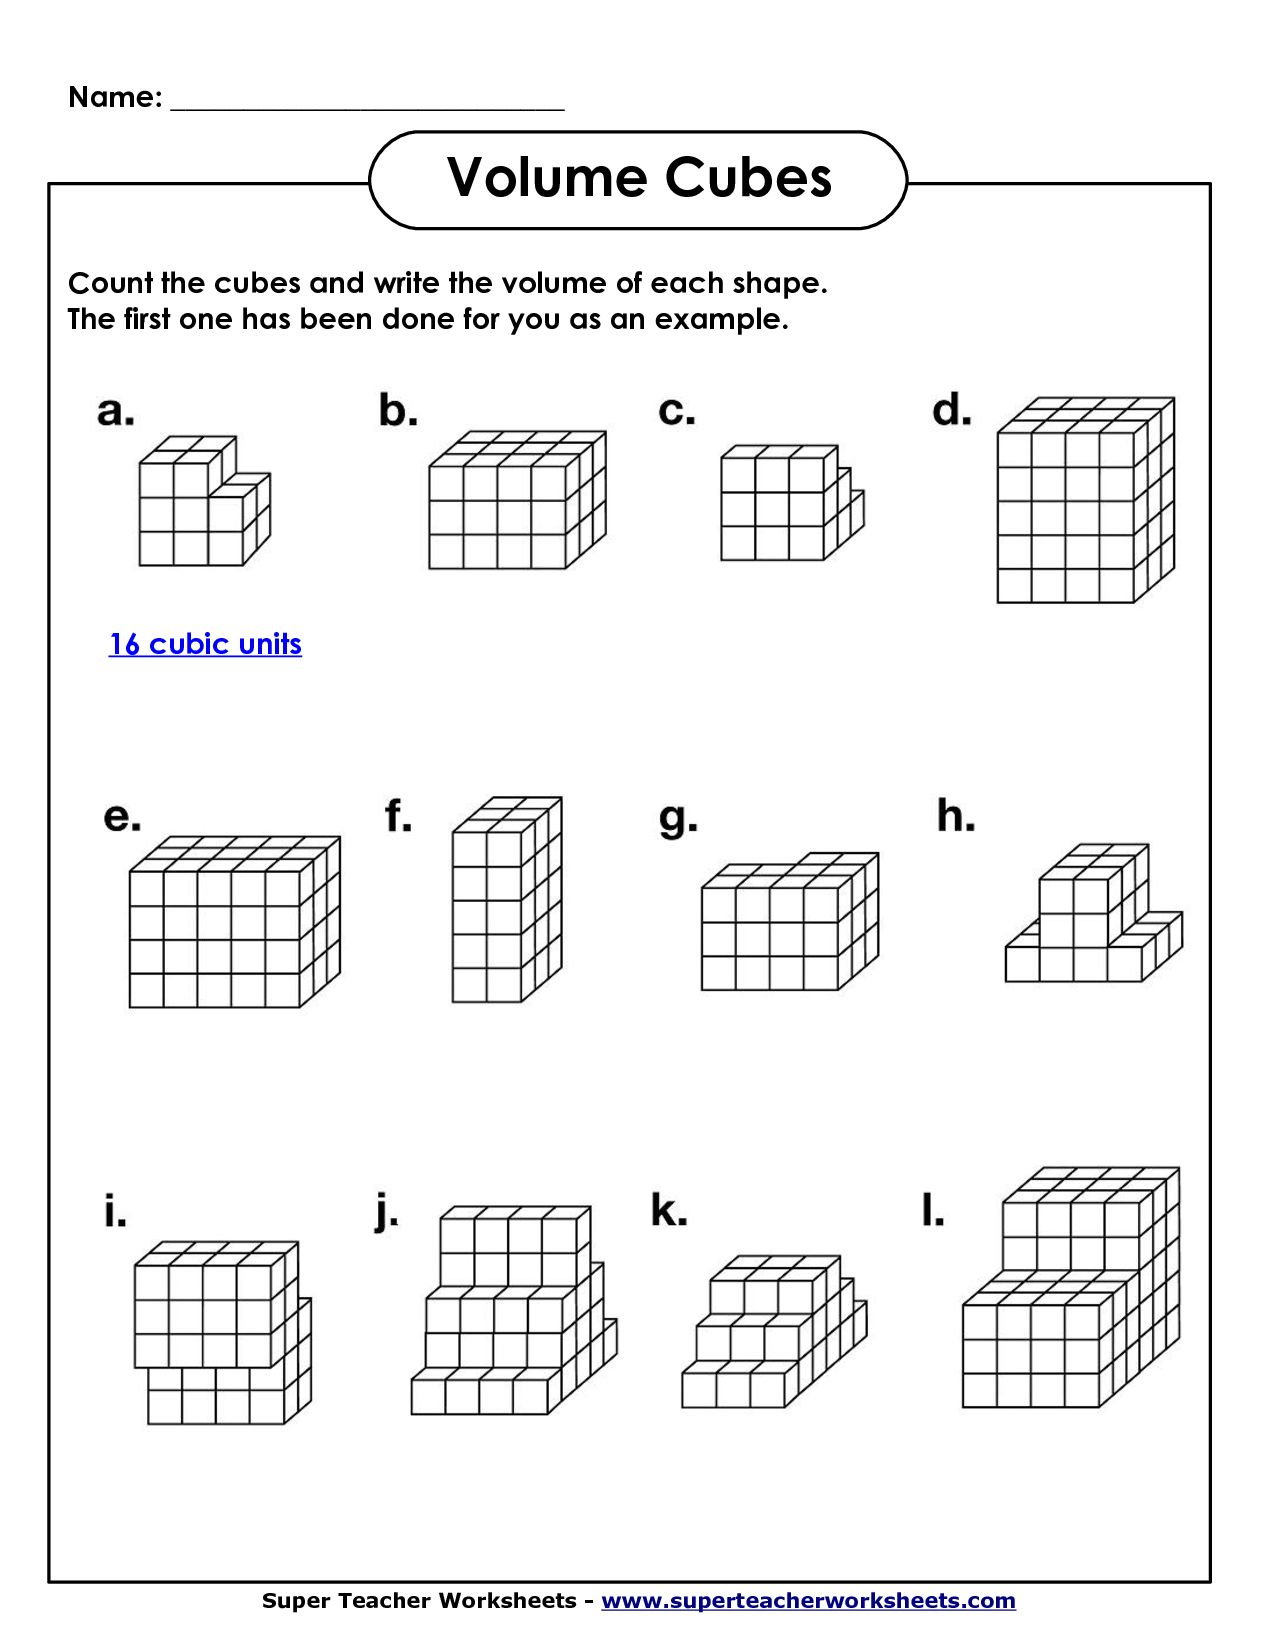 pin by lauren eris on education science expertiment volume worksheets kids math worksheets. Black Bedroom Furniture Sets. Home Design Ideas